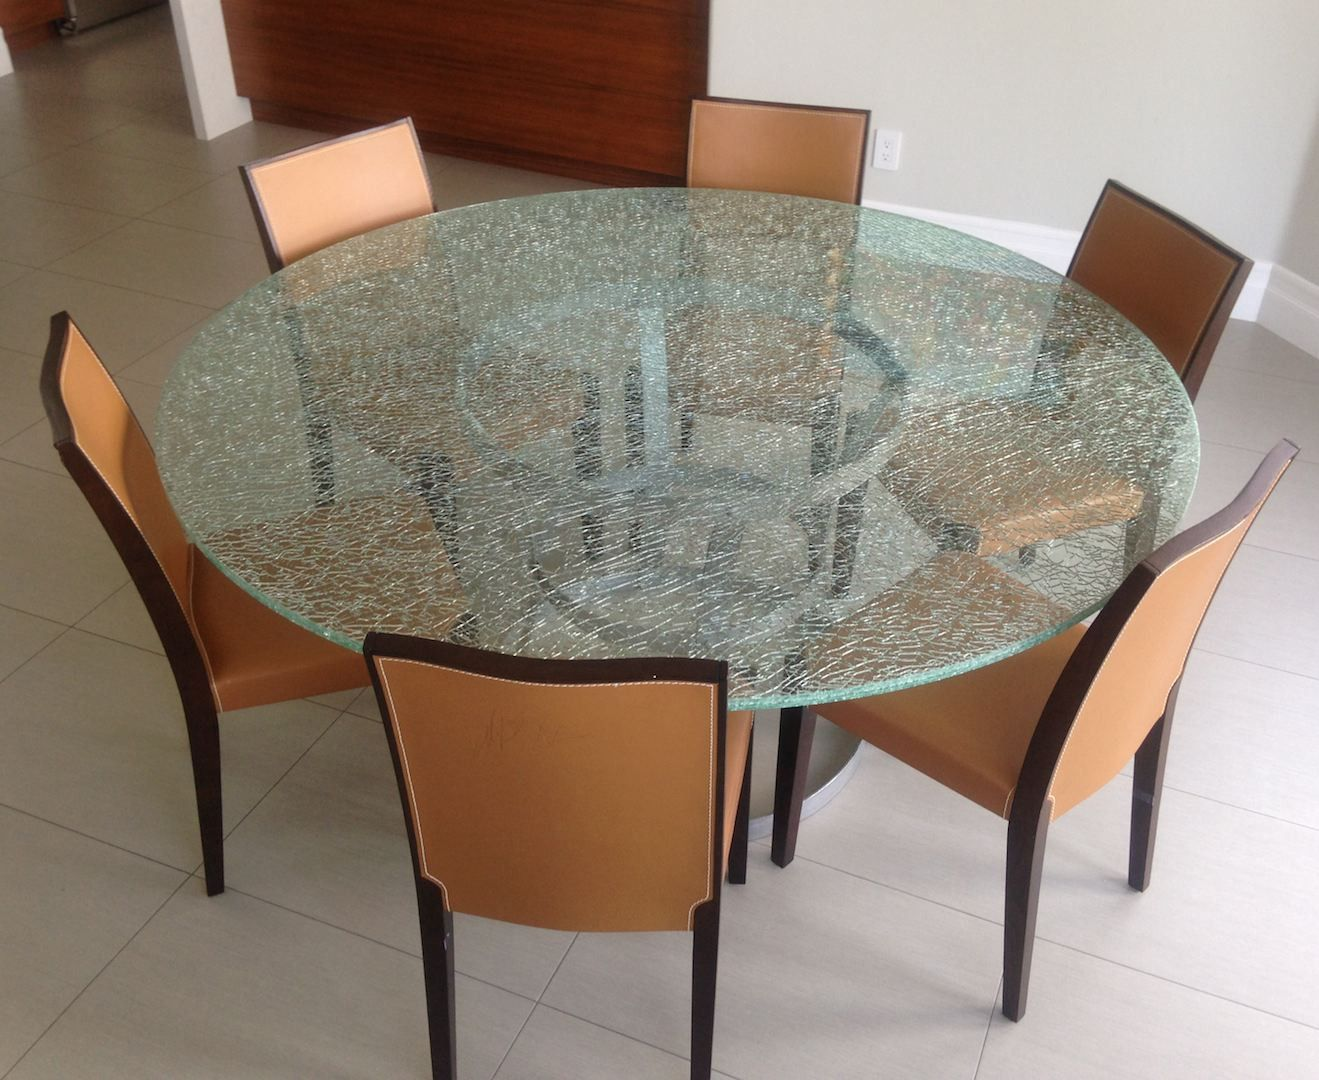 Round Crackle Glass Dining Table With Tripod Metal Base Glass Round Dining Table Glass Dining Room Table Glass Top Dining Table [ 1080 x 1319 Pixel ]